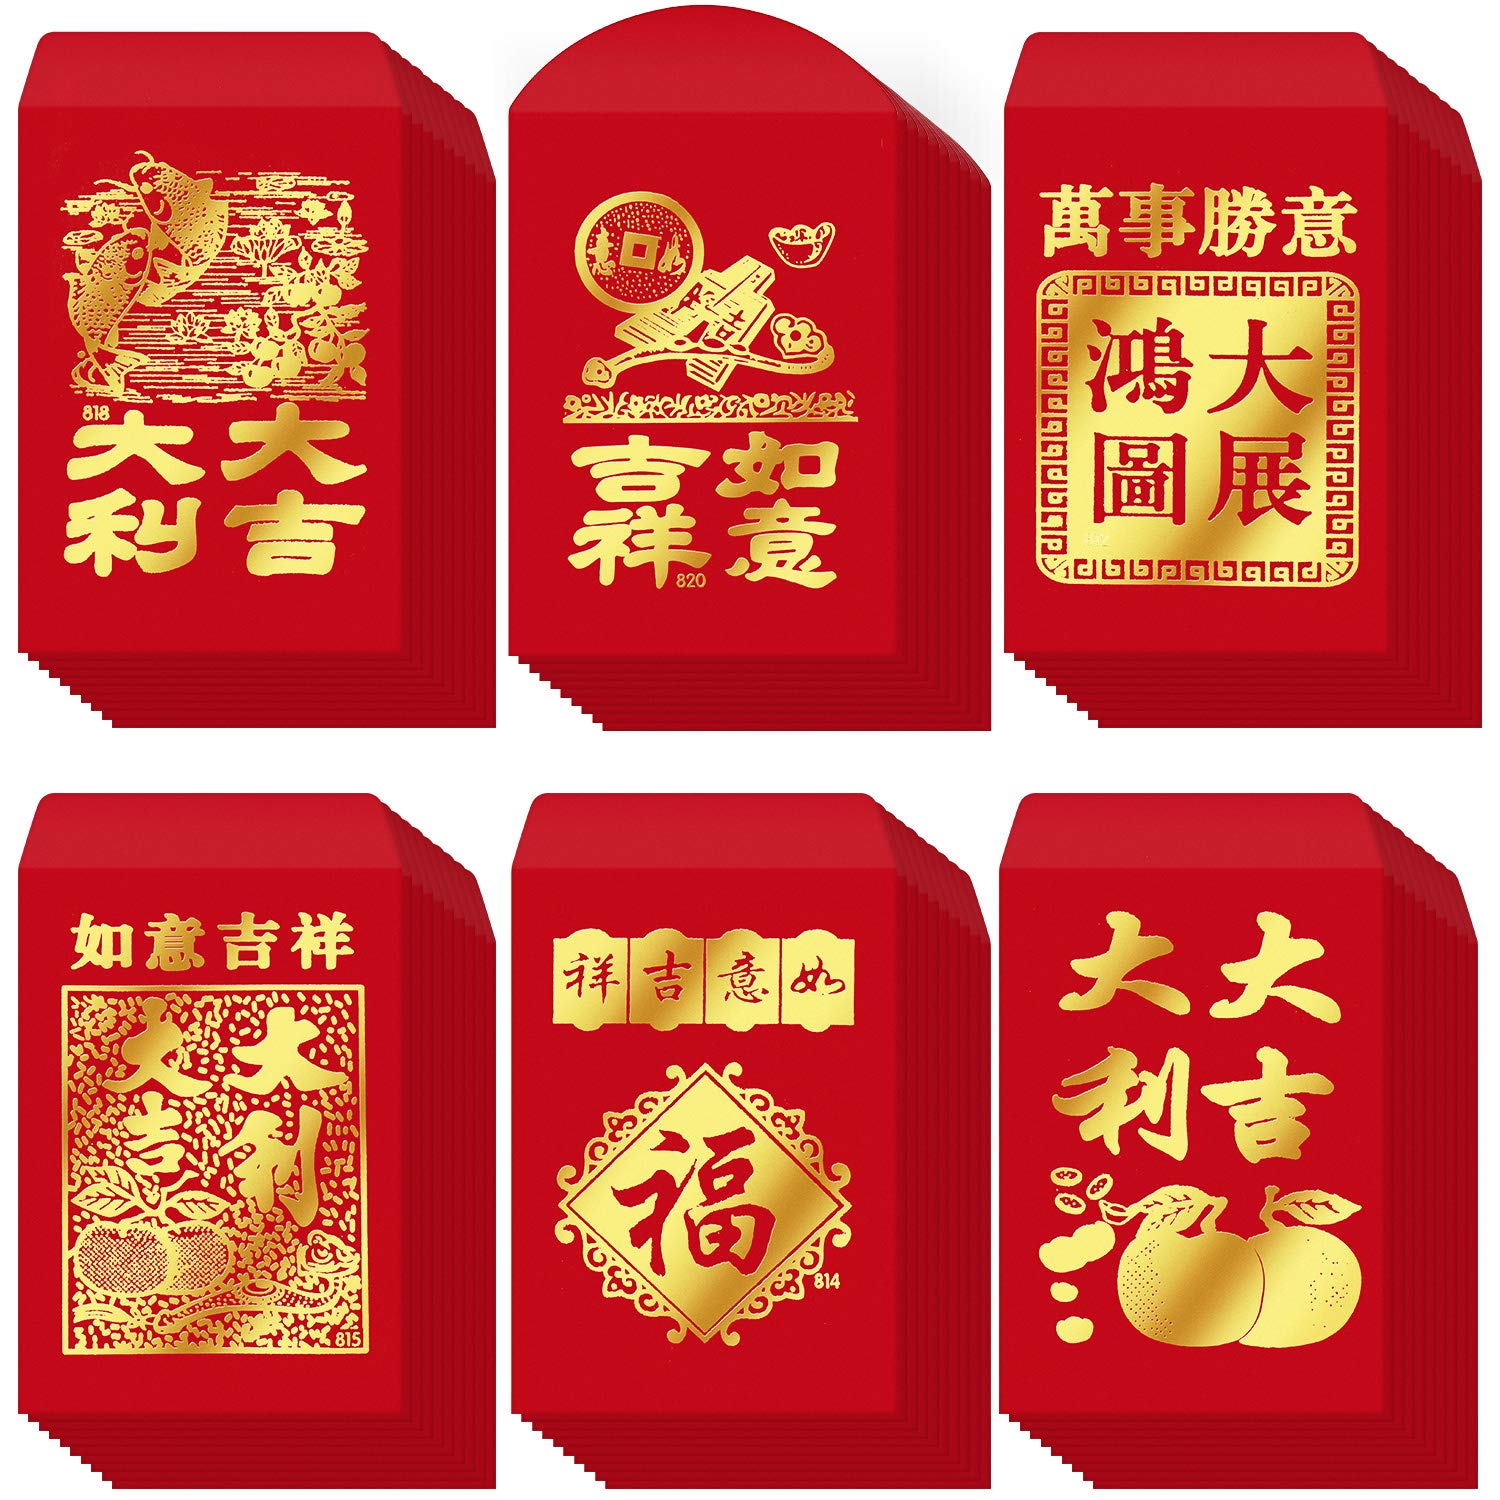 120 Pieces Chinese Red Envelopes Chinese New Year Hong Bao Red Pockets for Spring Festival Wedding Birthday